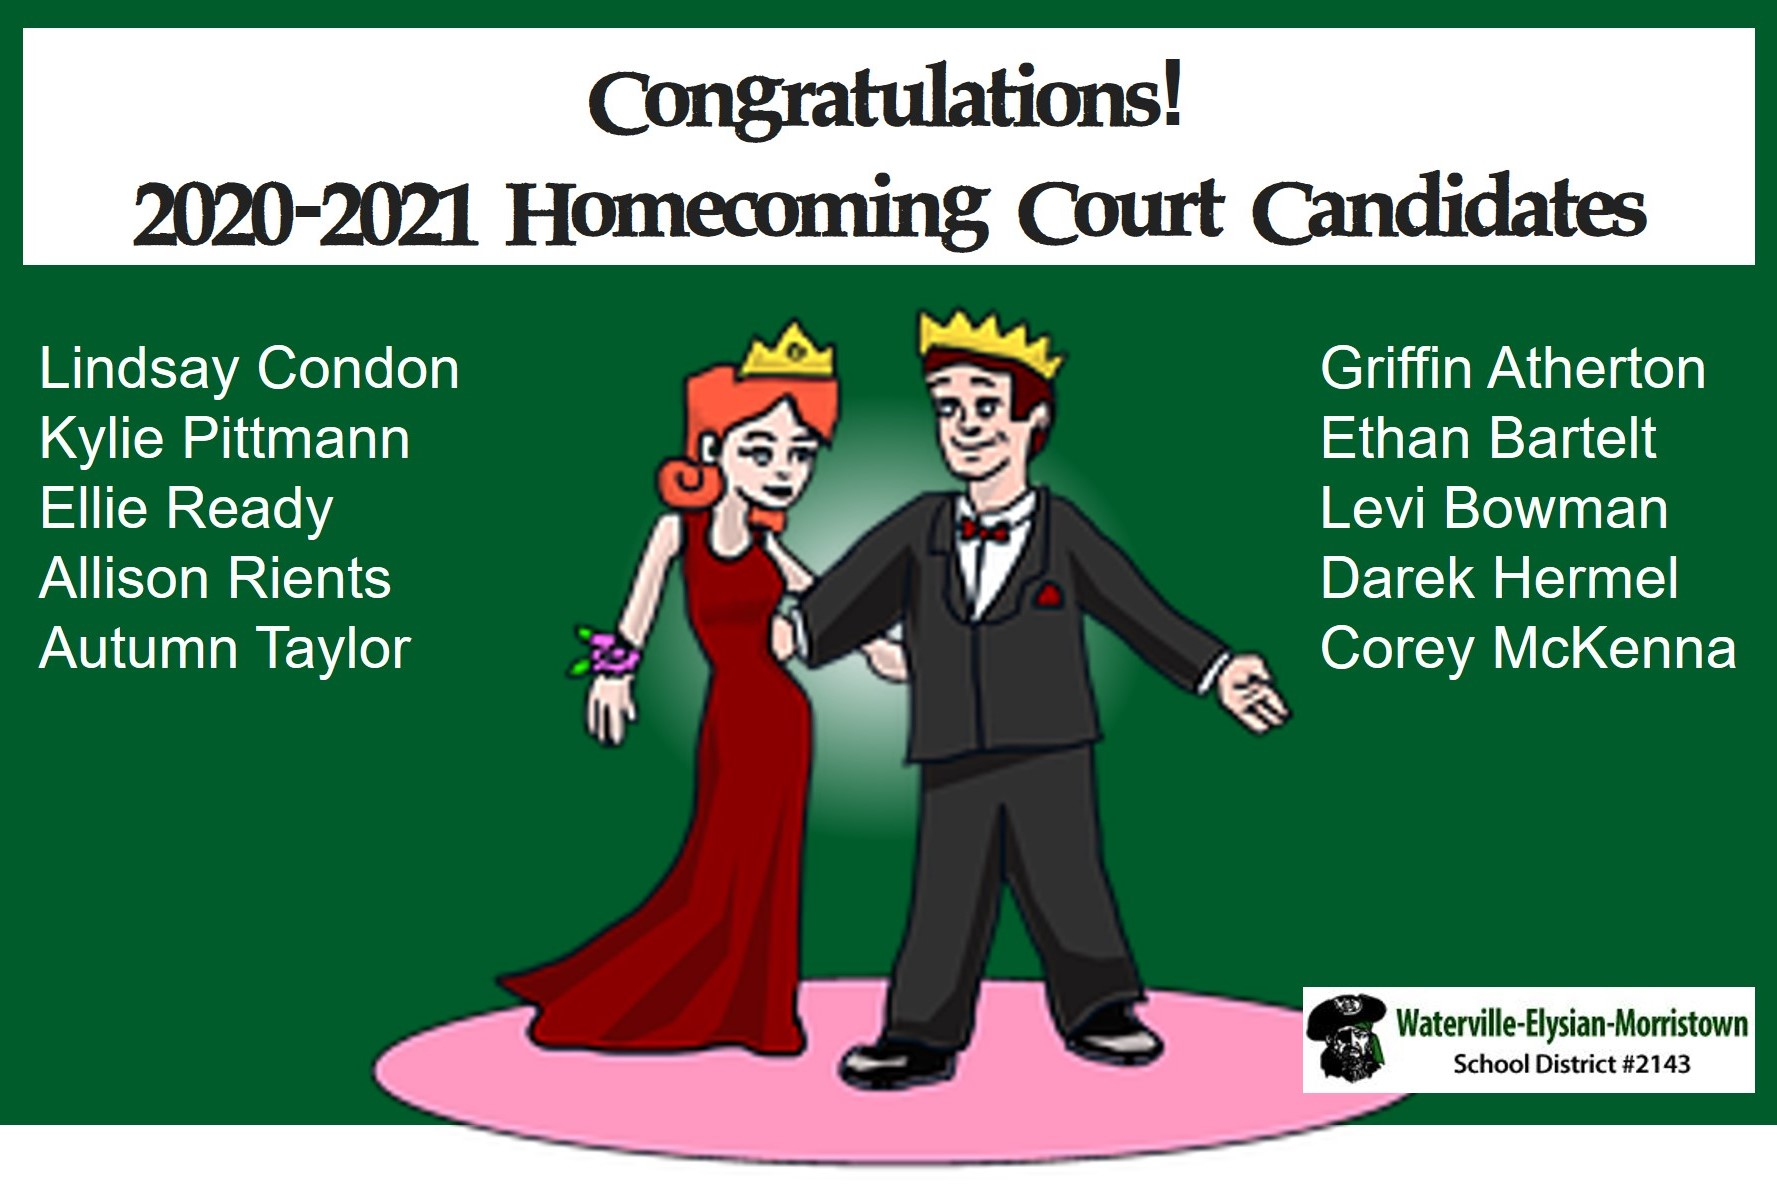 Congratulations! 2020-2021 Homecoming Court Candidates